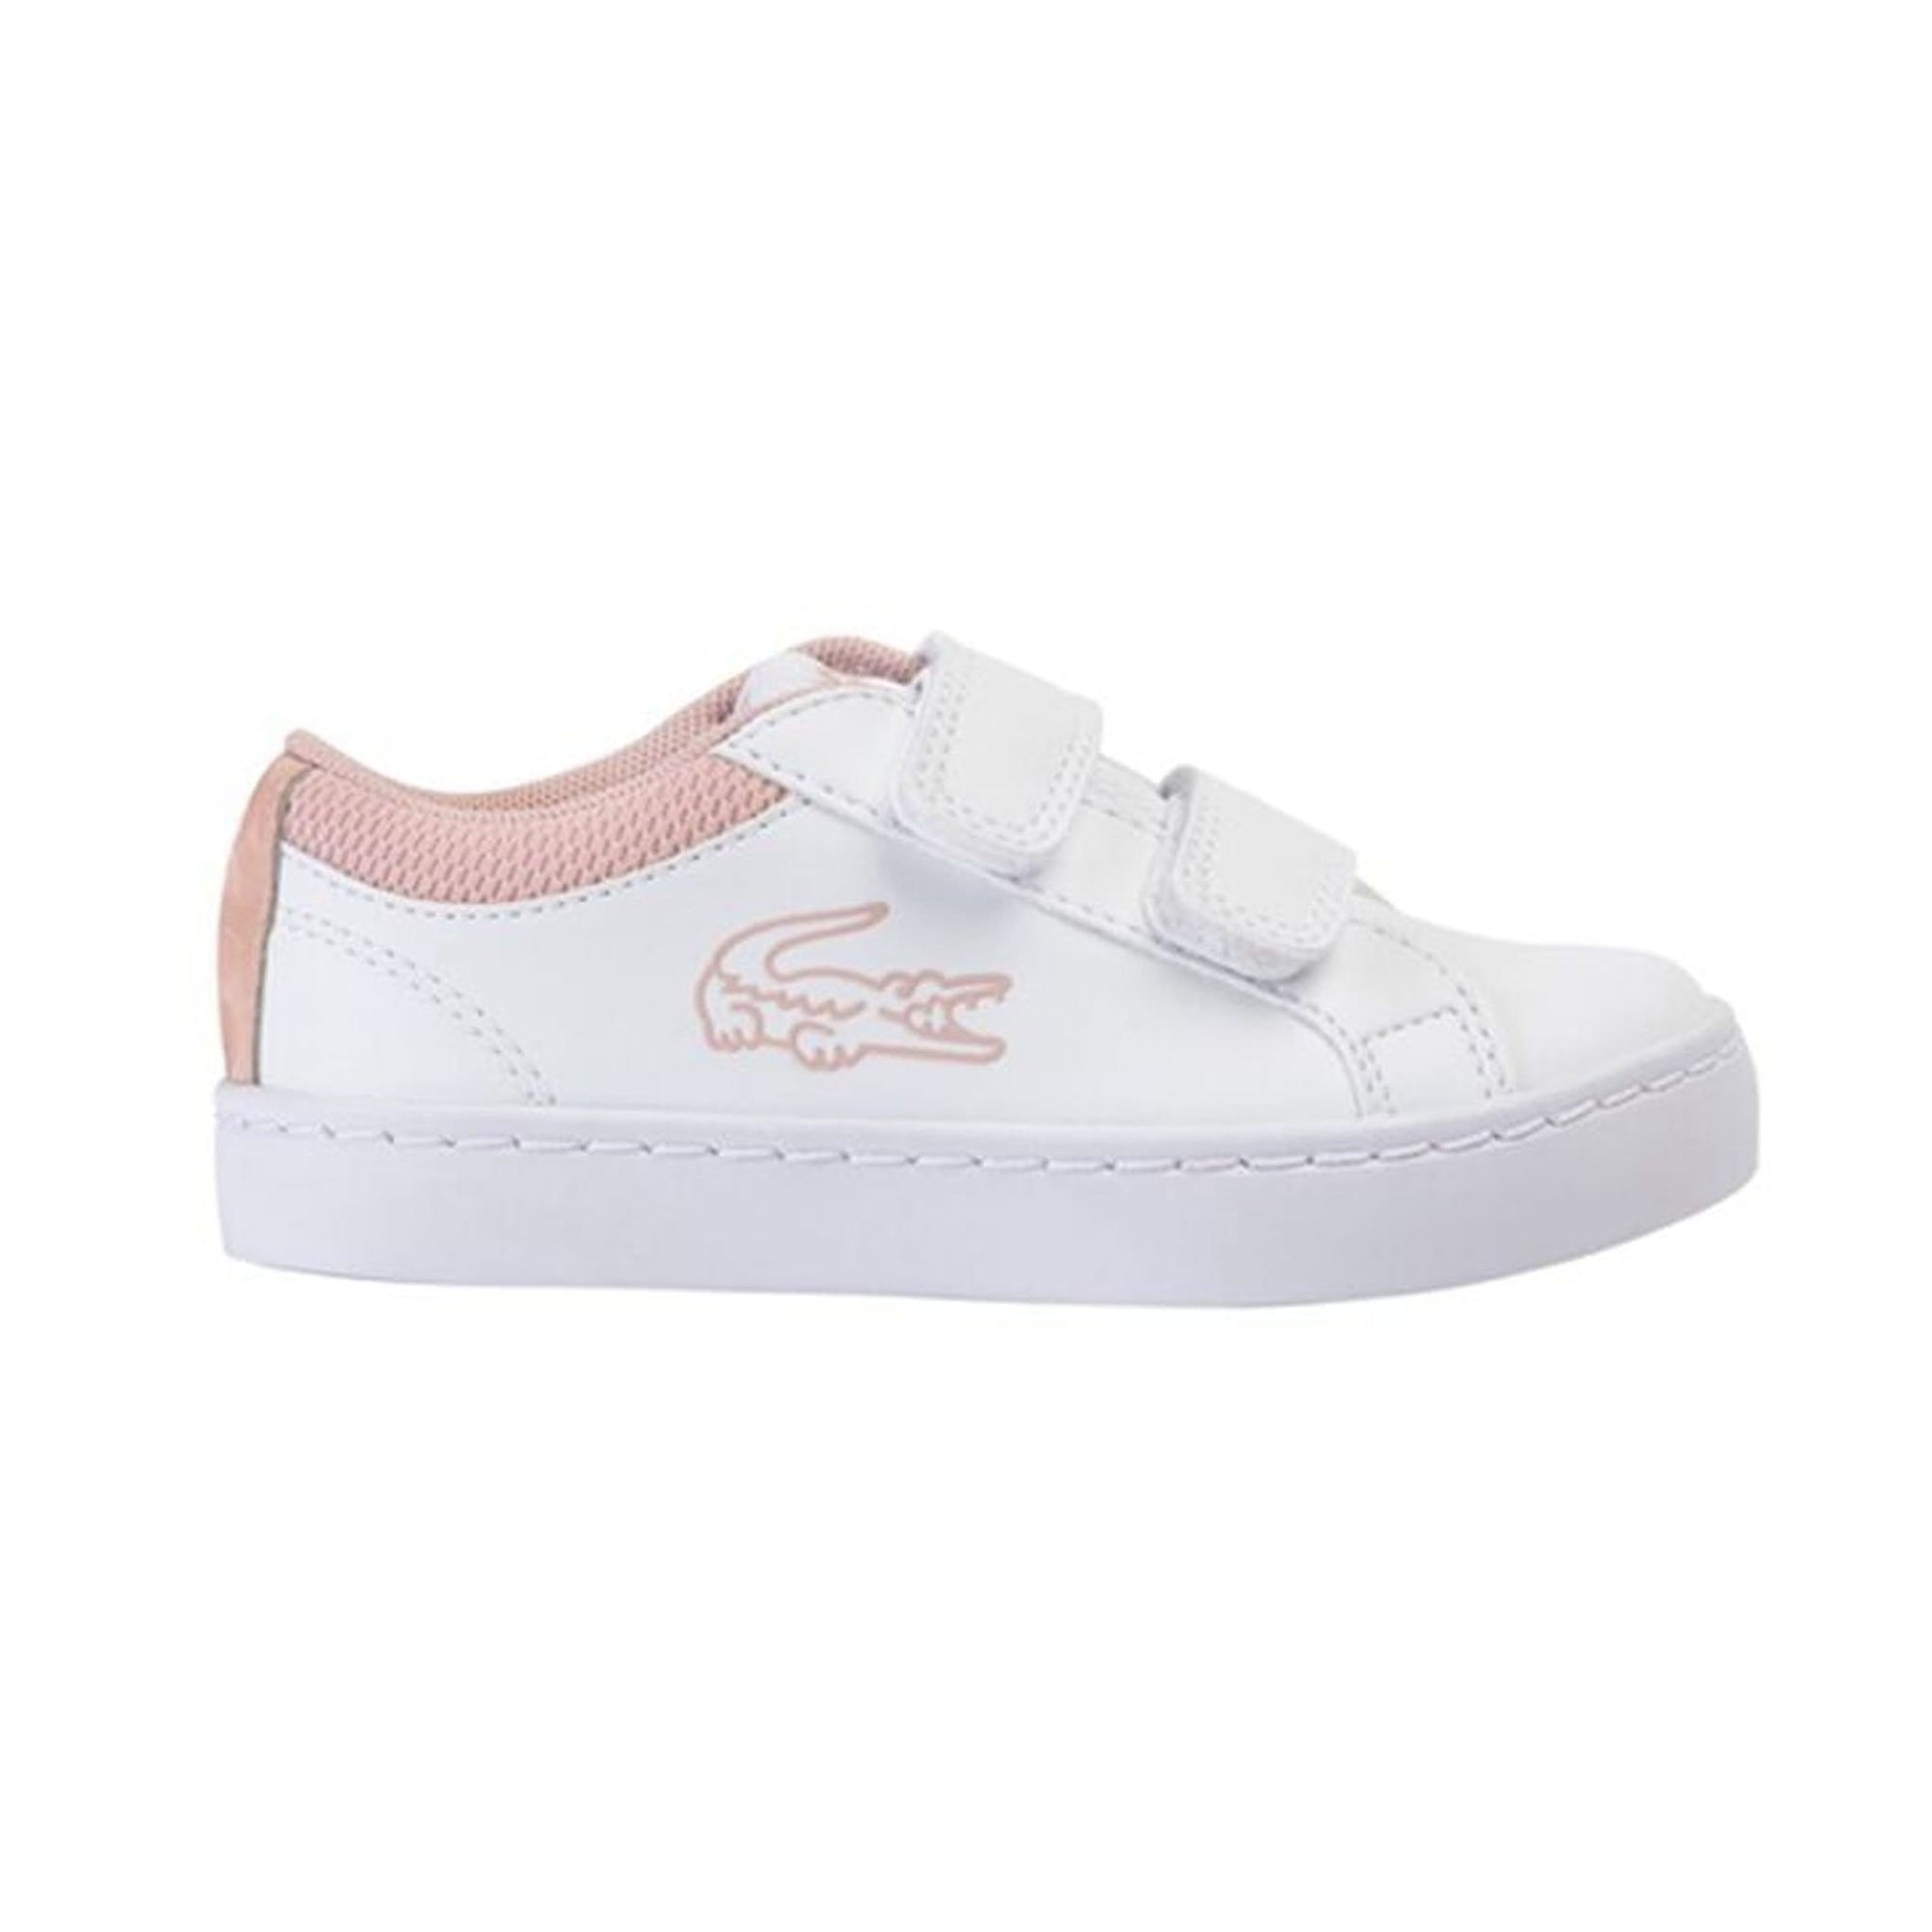 Lacoste Straightset 120 2 C Sneakers Toddlers (4659911557251)